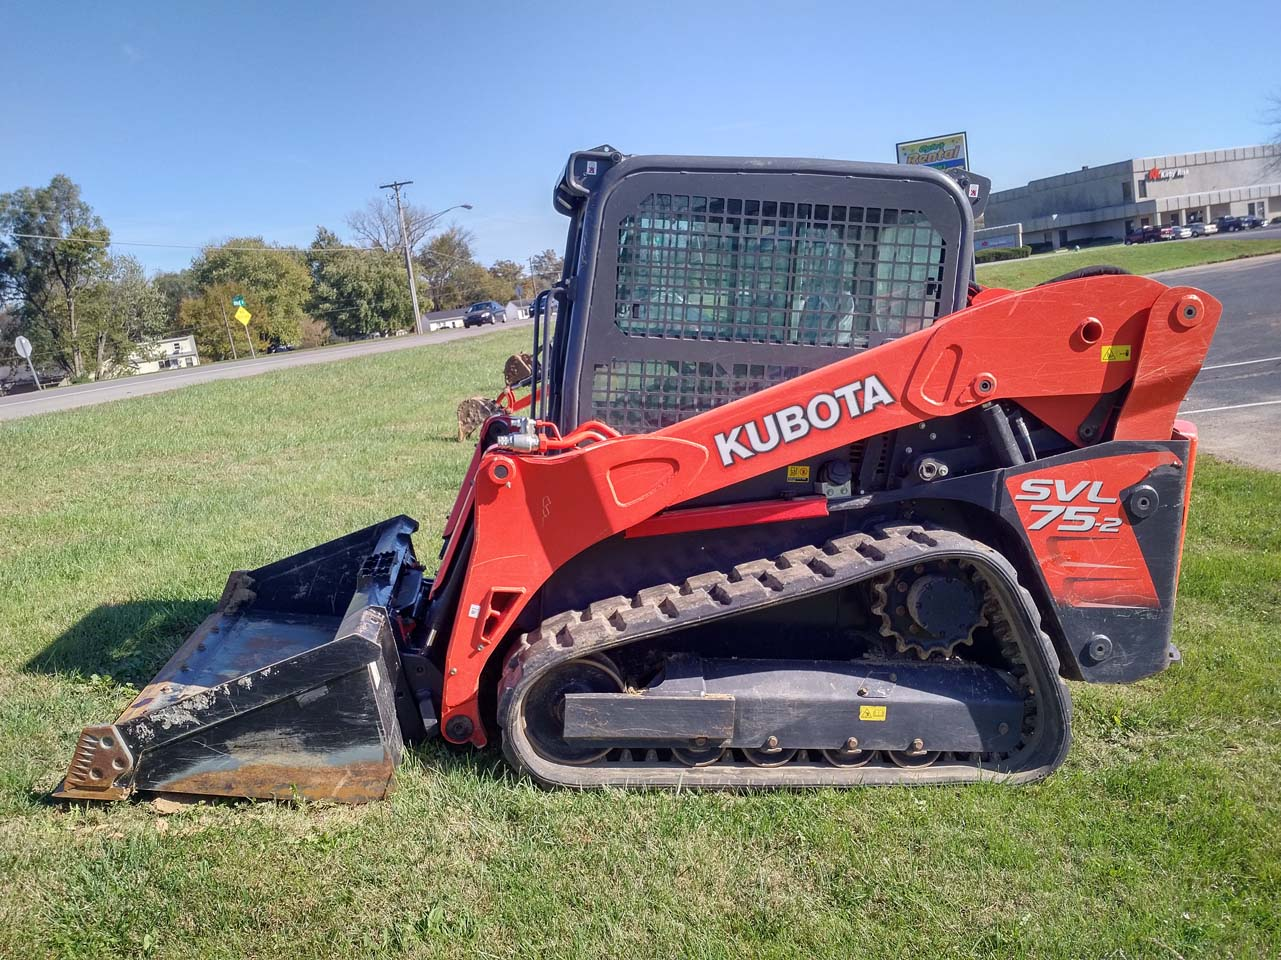 Kubota Skid Steer